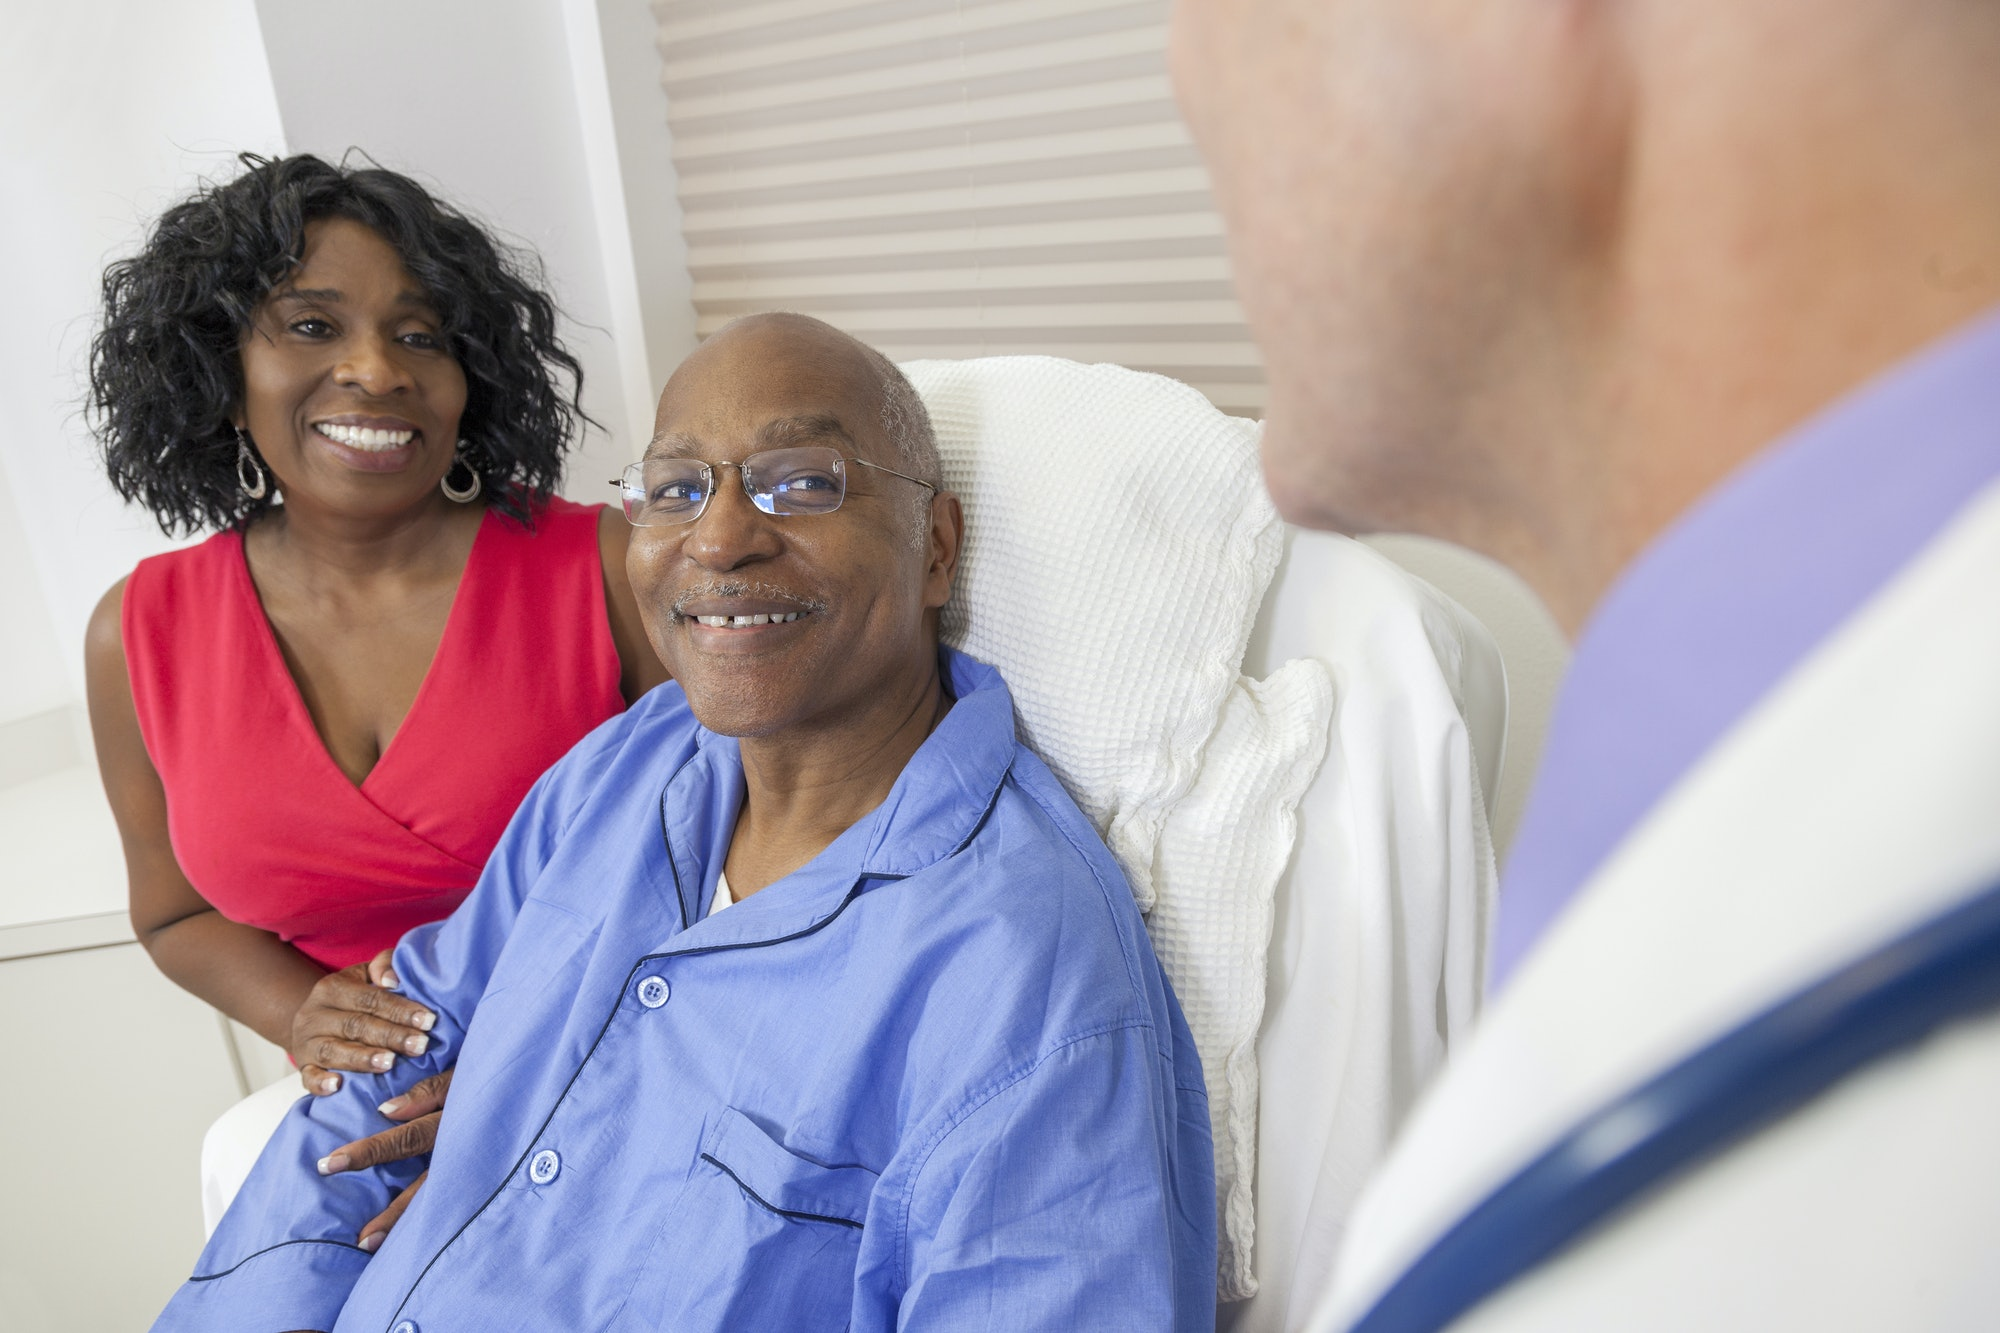 A healthcare algorithm recommended Black patients for extra care at lower rates than white patients.